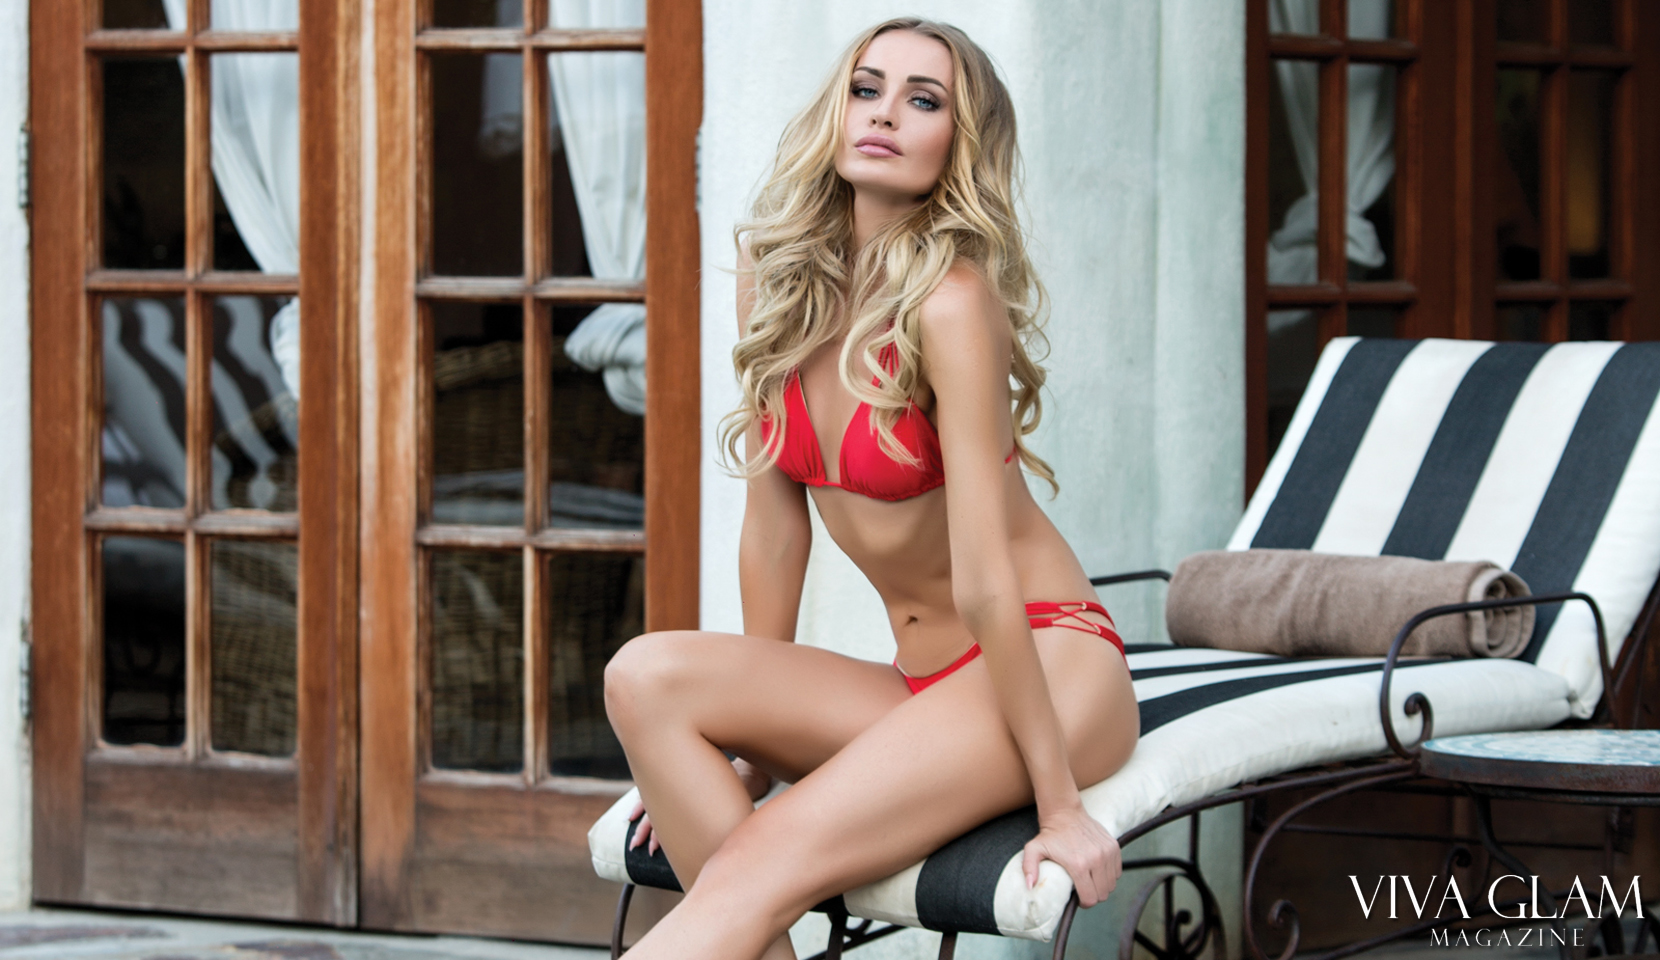 VIVA GLAM's Sexiest Top 20 Agata Zia